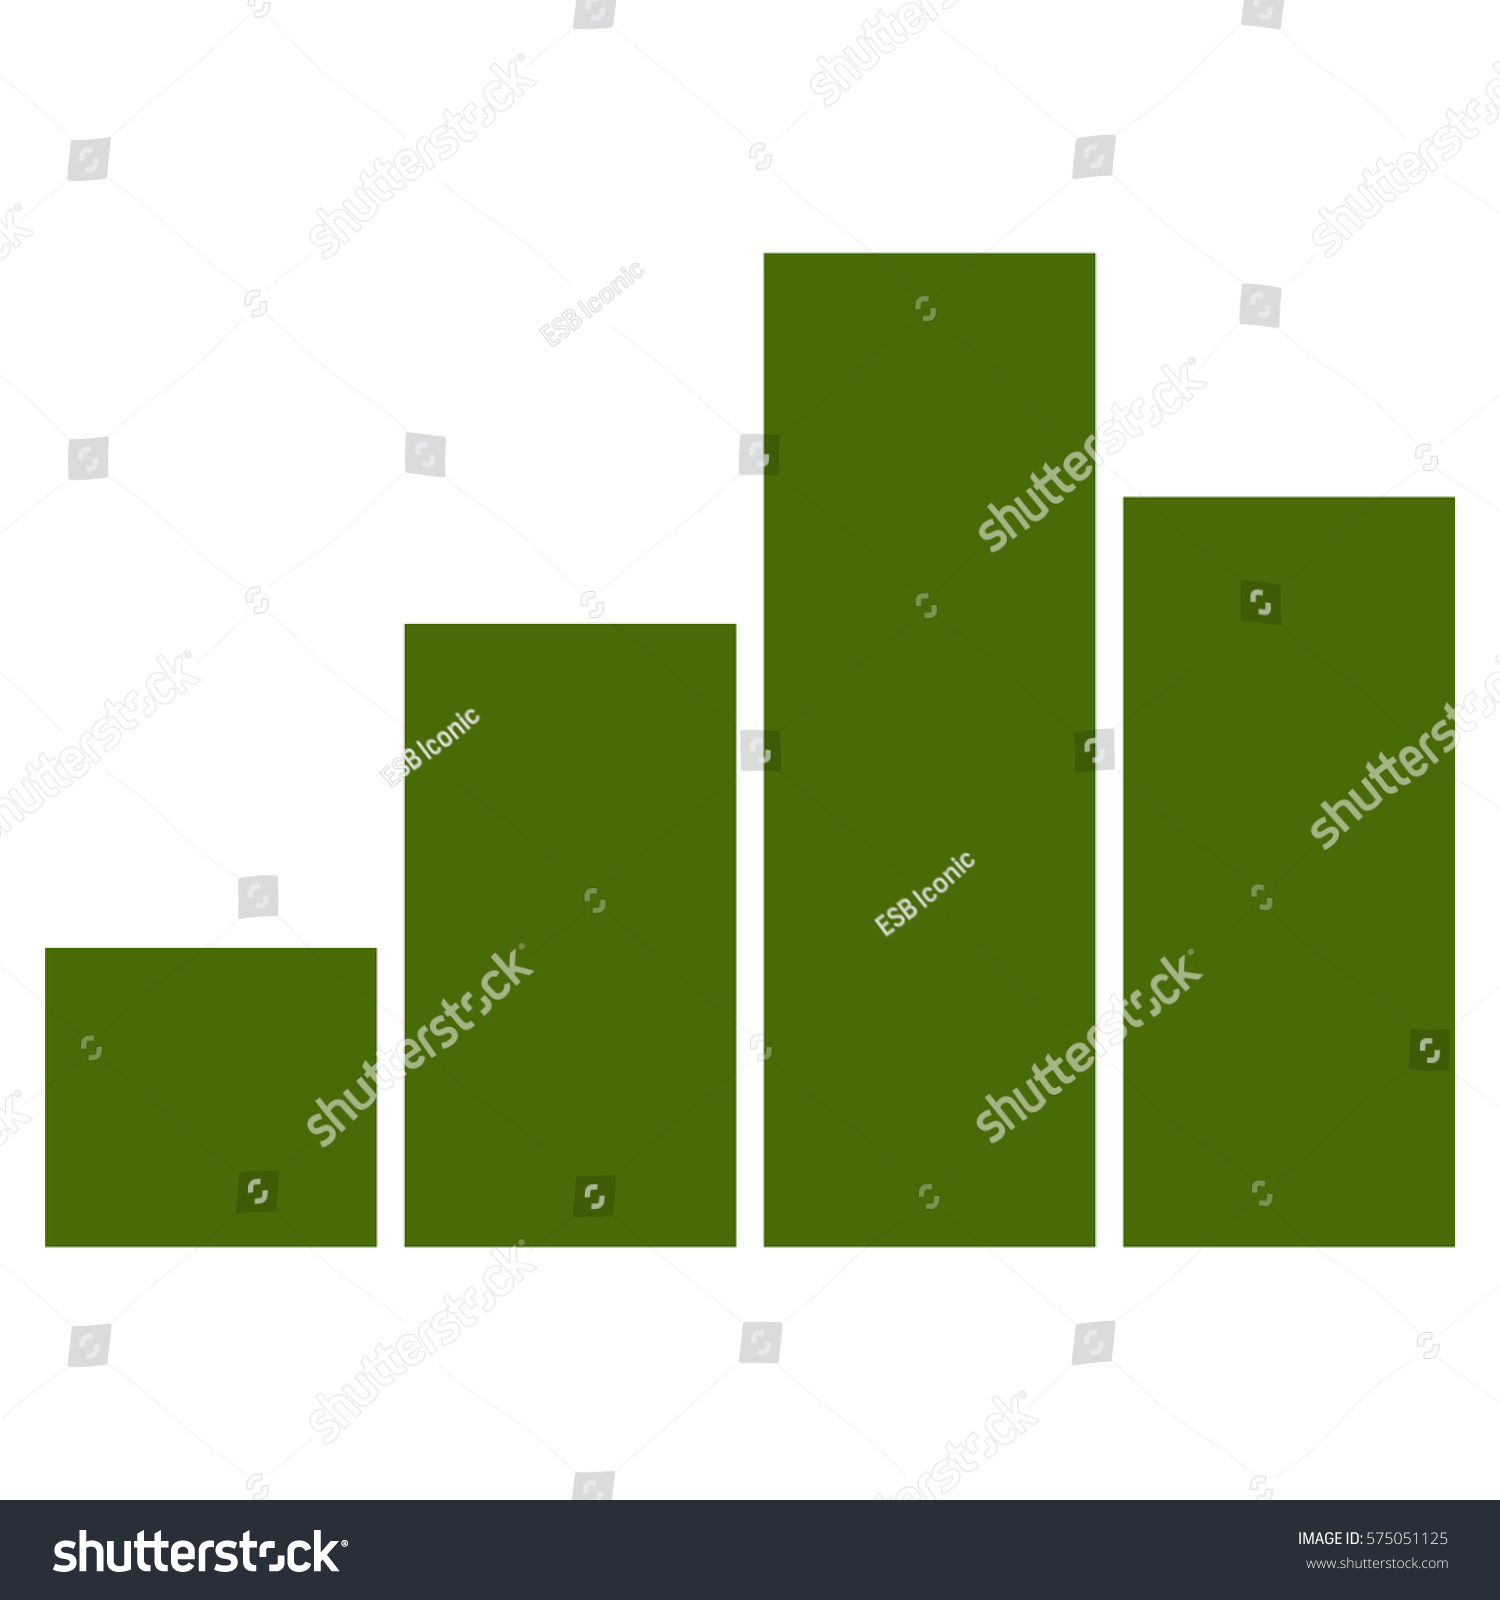 stock vector vector illustration of bar chart in green icon 575051125 swot icon wiring diagrams wiring diagrams flat design letters for th8320r1003 wiring diagrams at mifinder.co